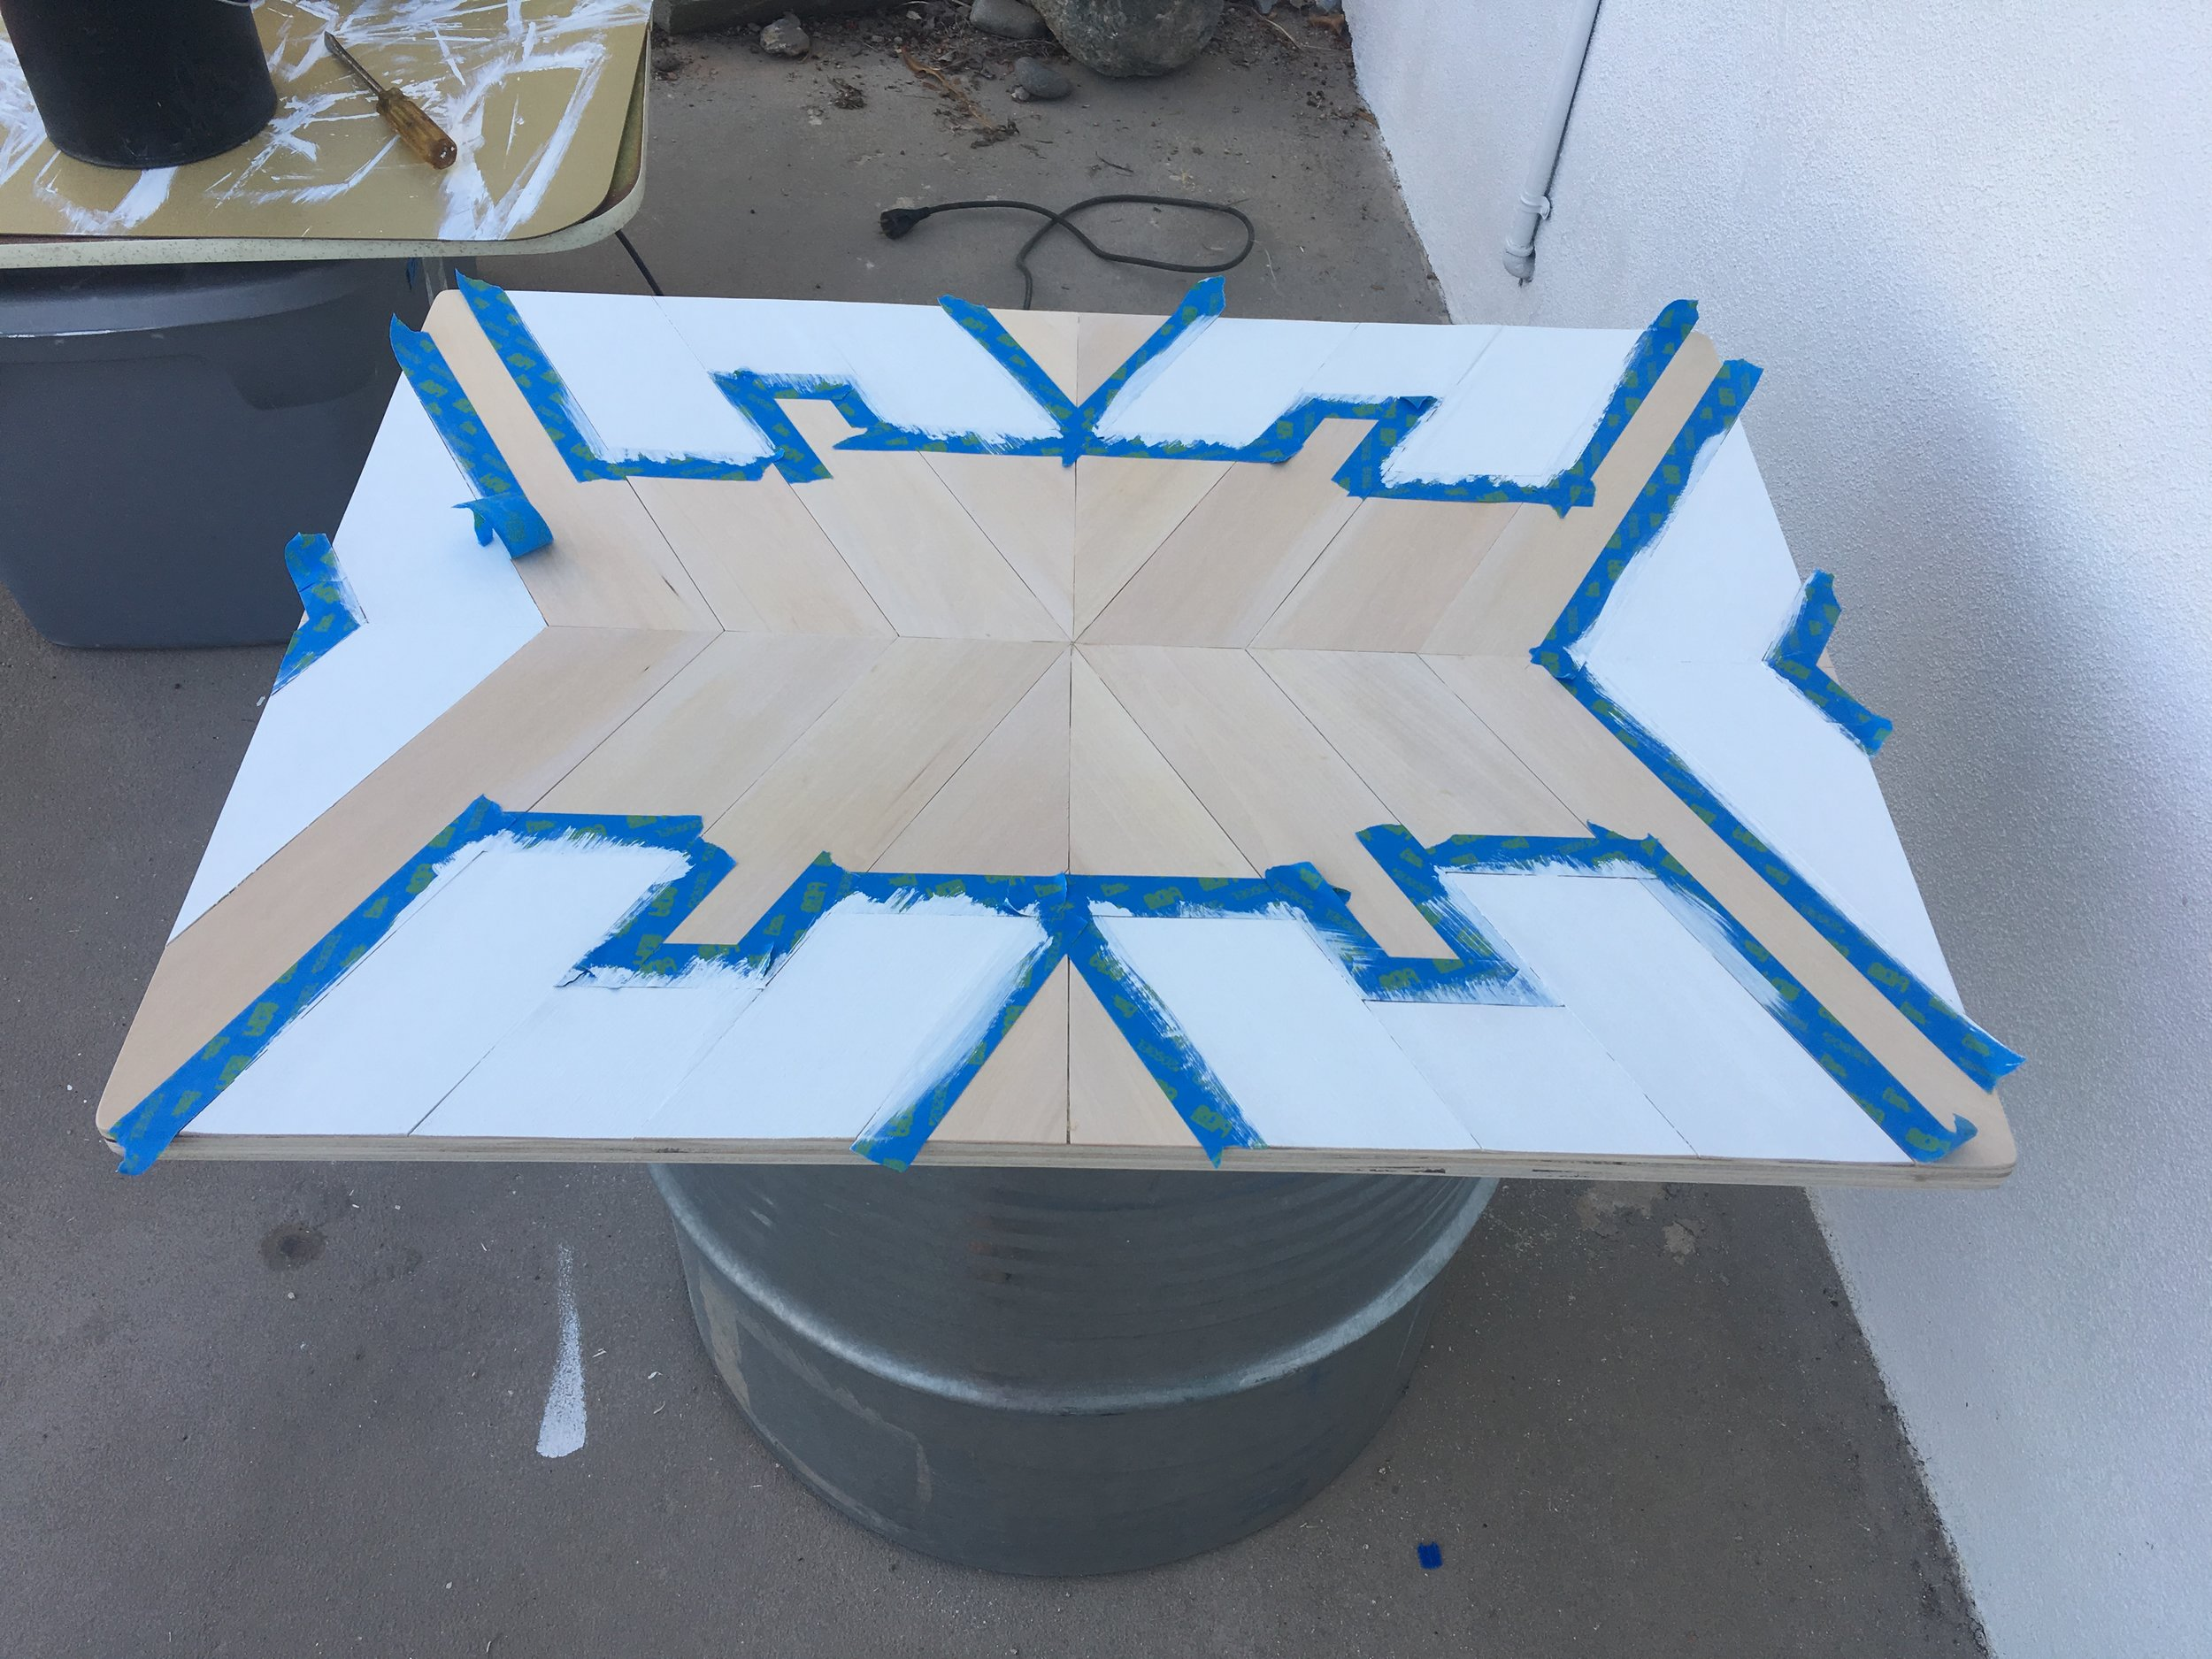 Taping off the pattern and painting geometric table